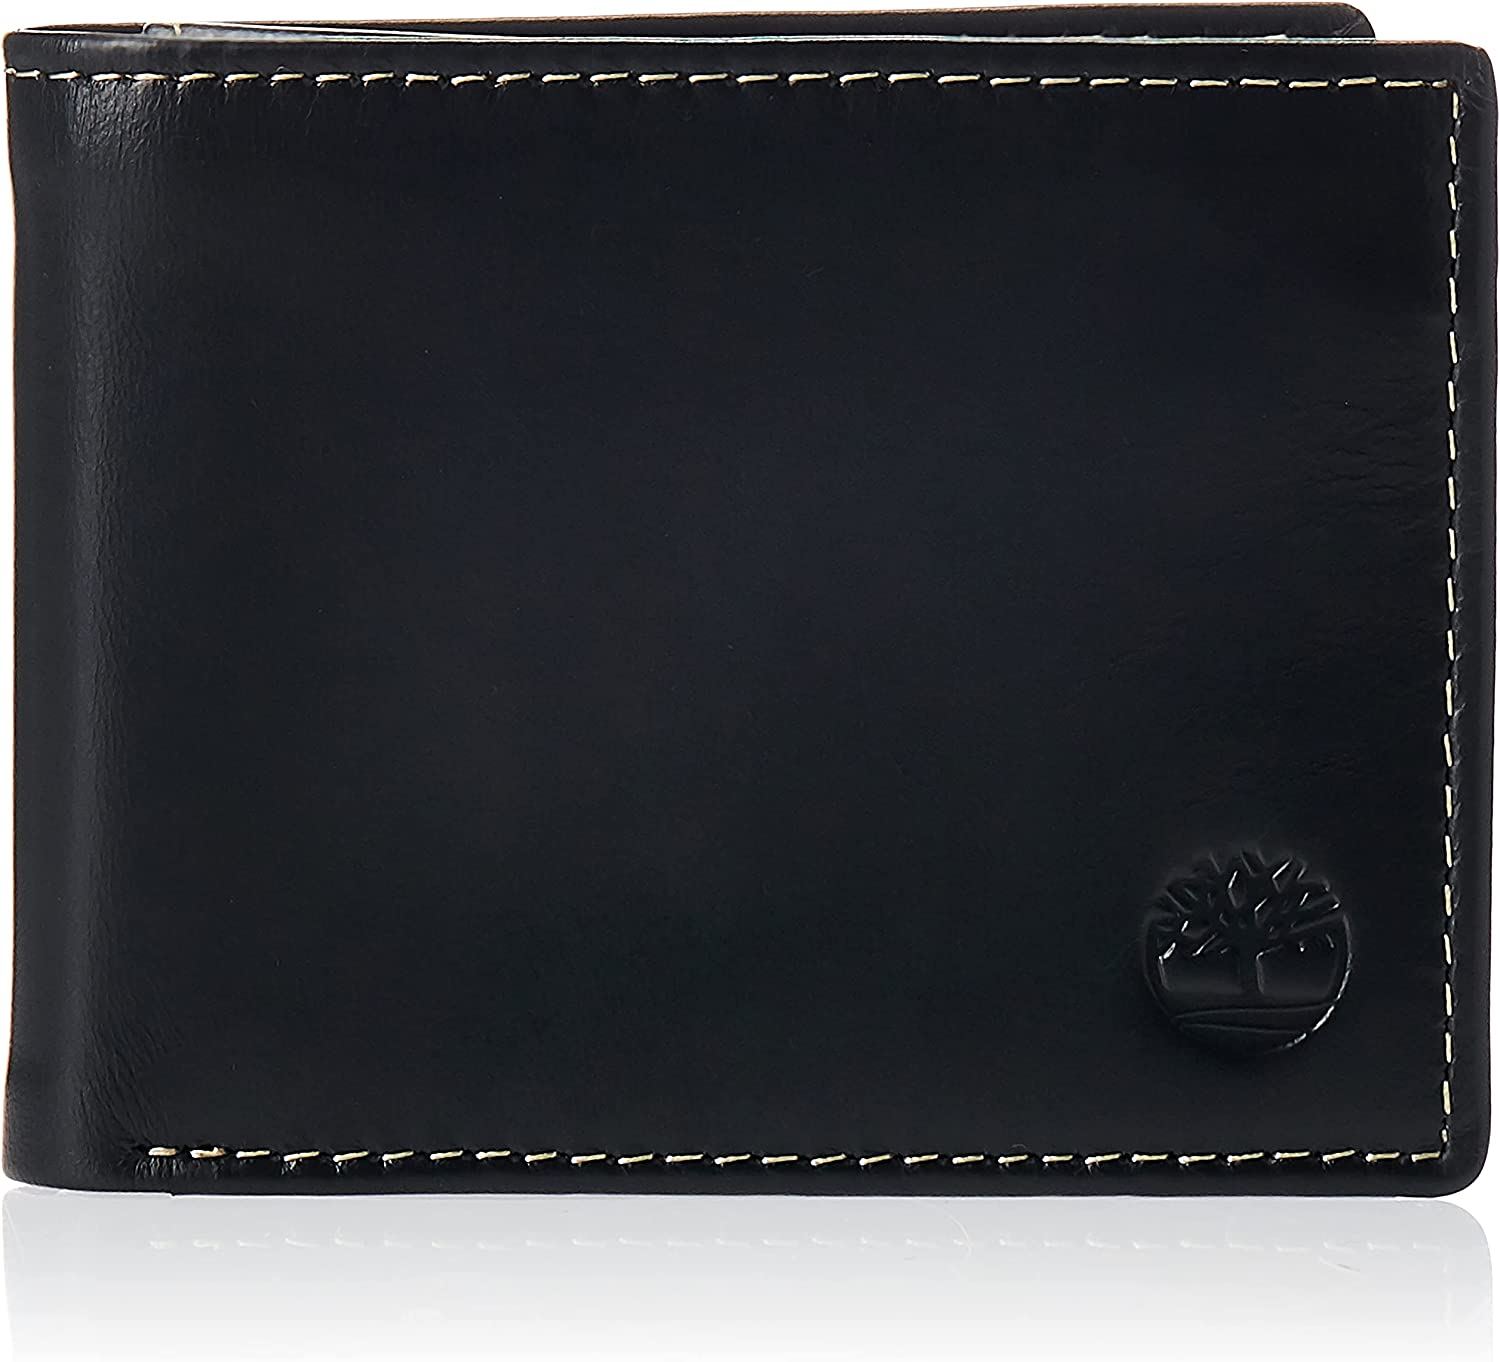 Timberland Men's Leather Wallet with Attached Flip Pocket